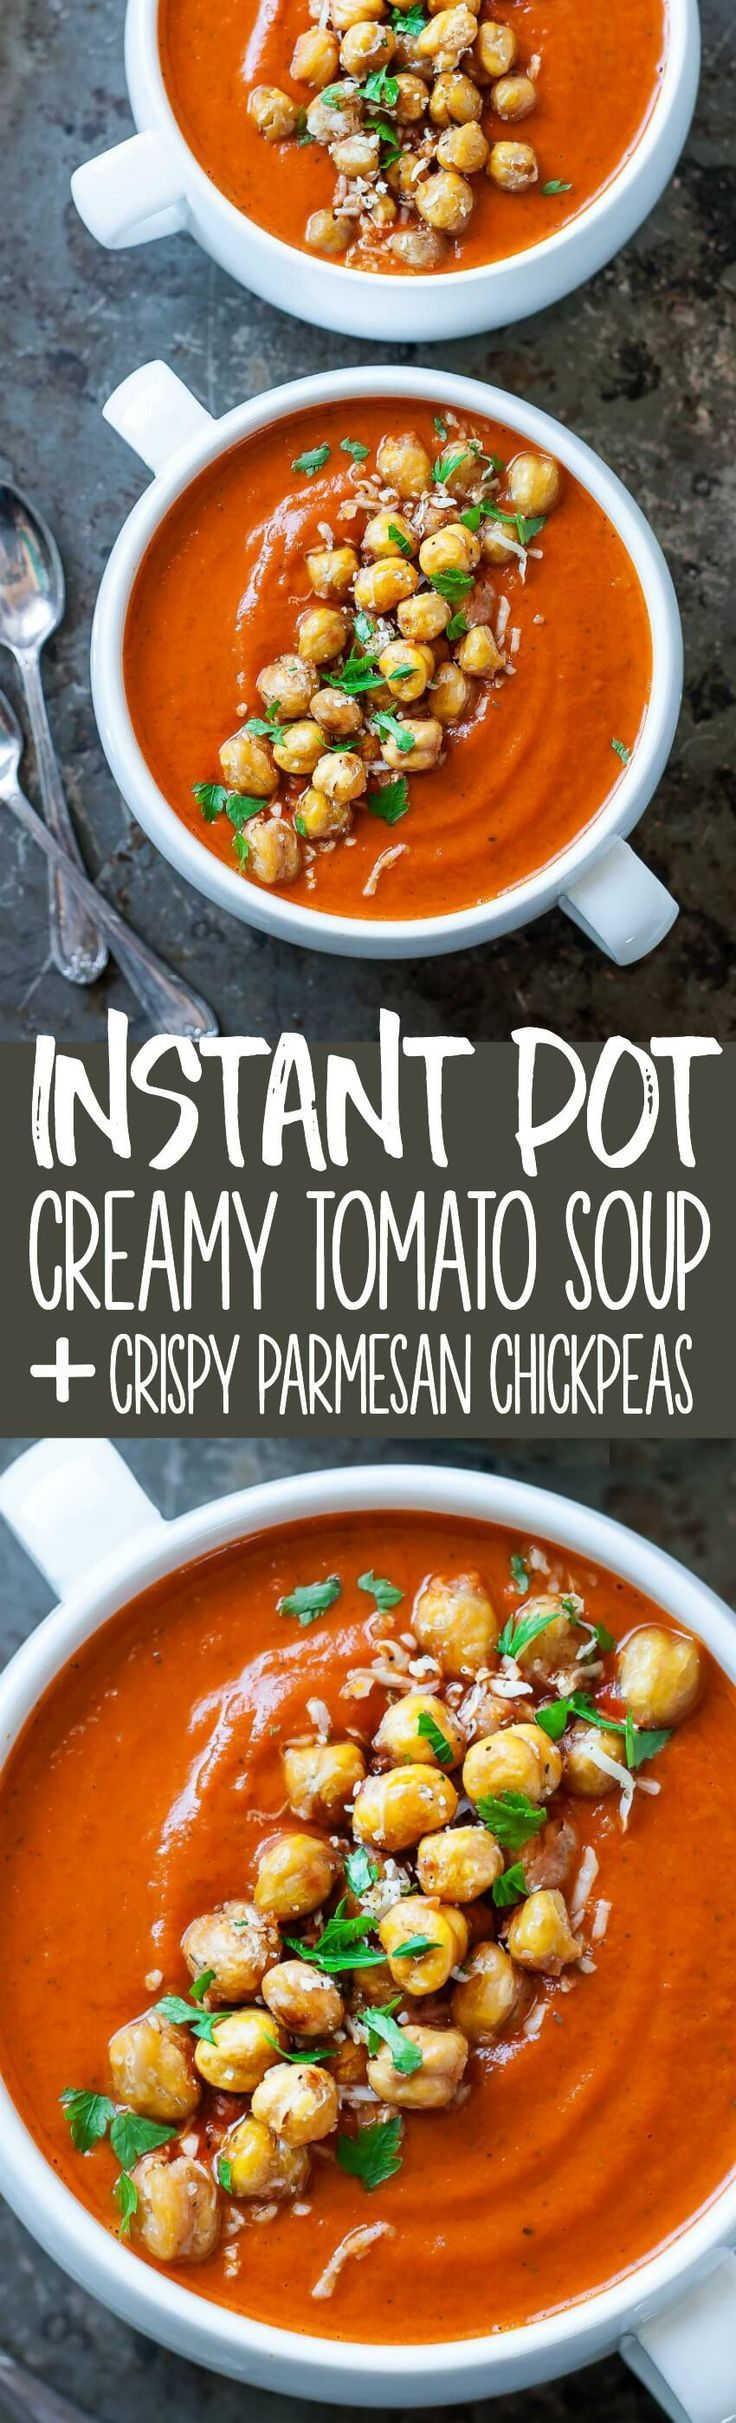 We're loving this quick and easy Instant Pot Creamy Tomato Soup with Crispy Parmesan Chickpeas! Stove-top instructions also available below. Vegetarian + GF